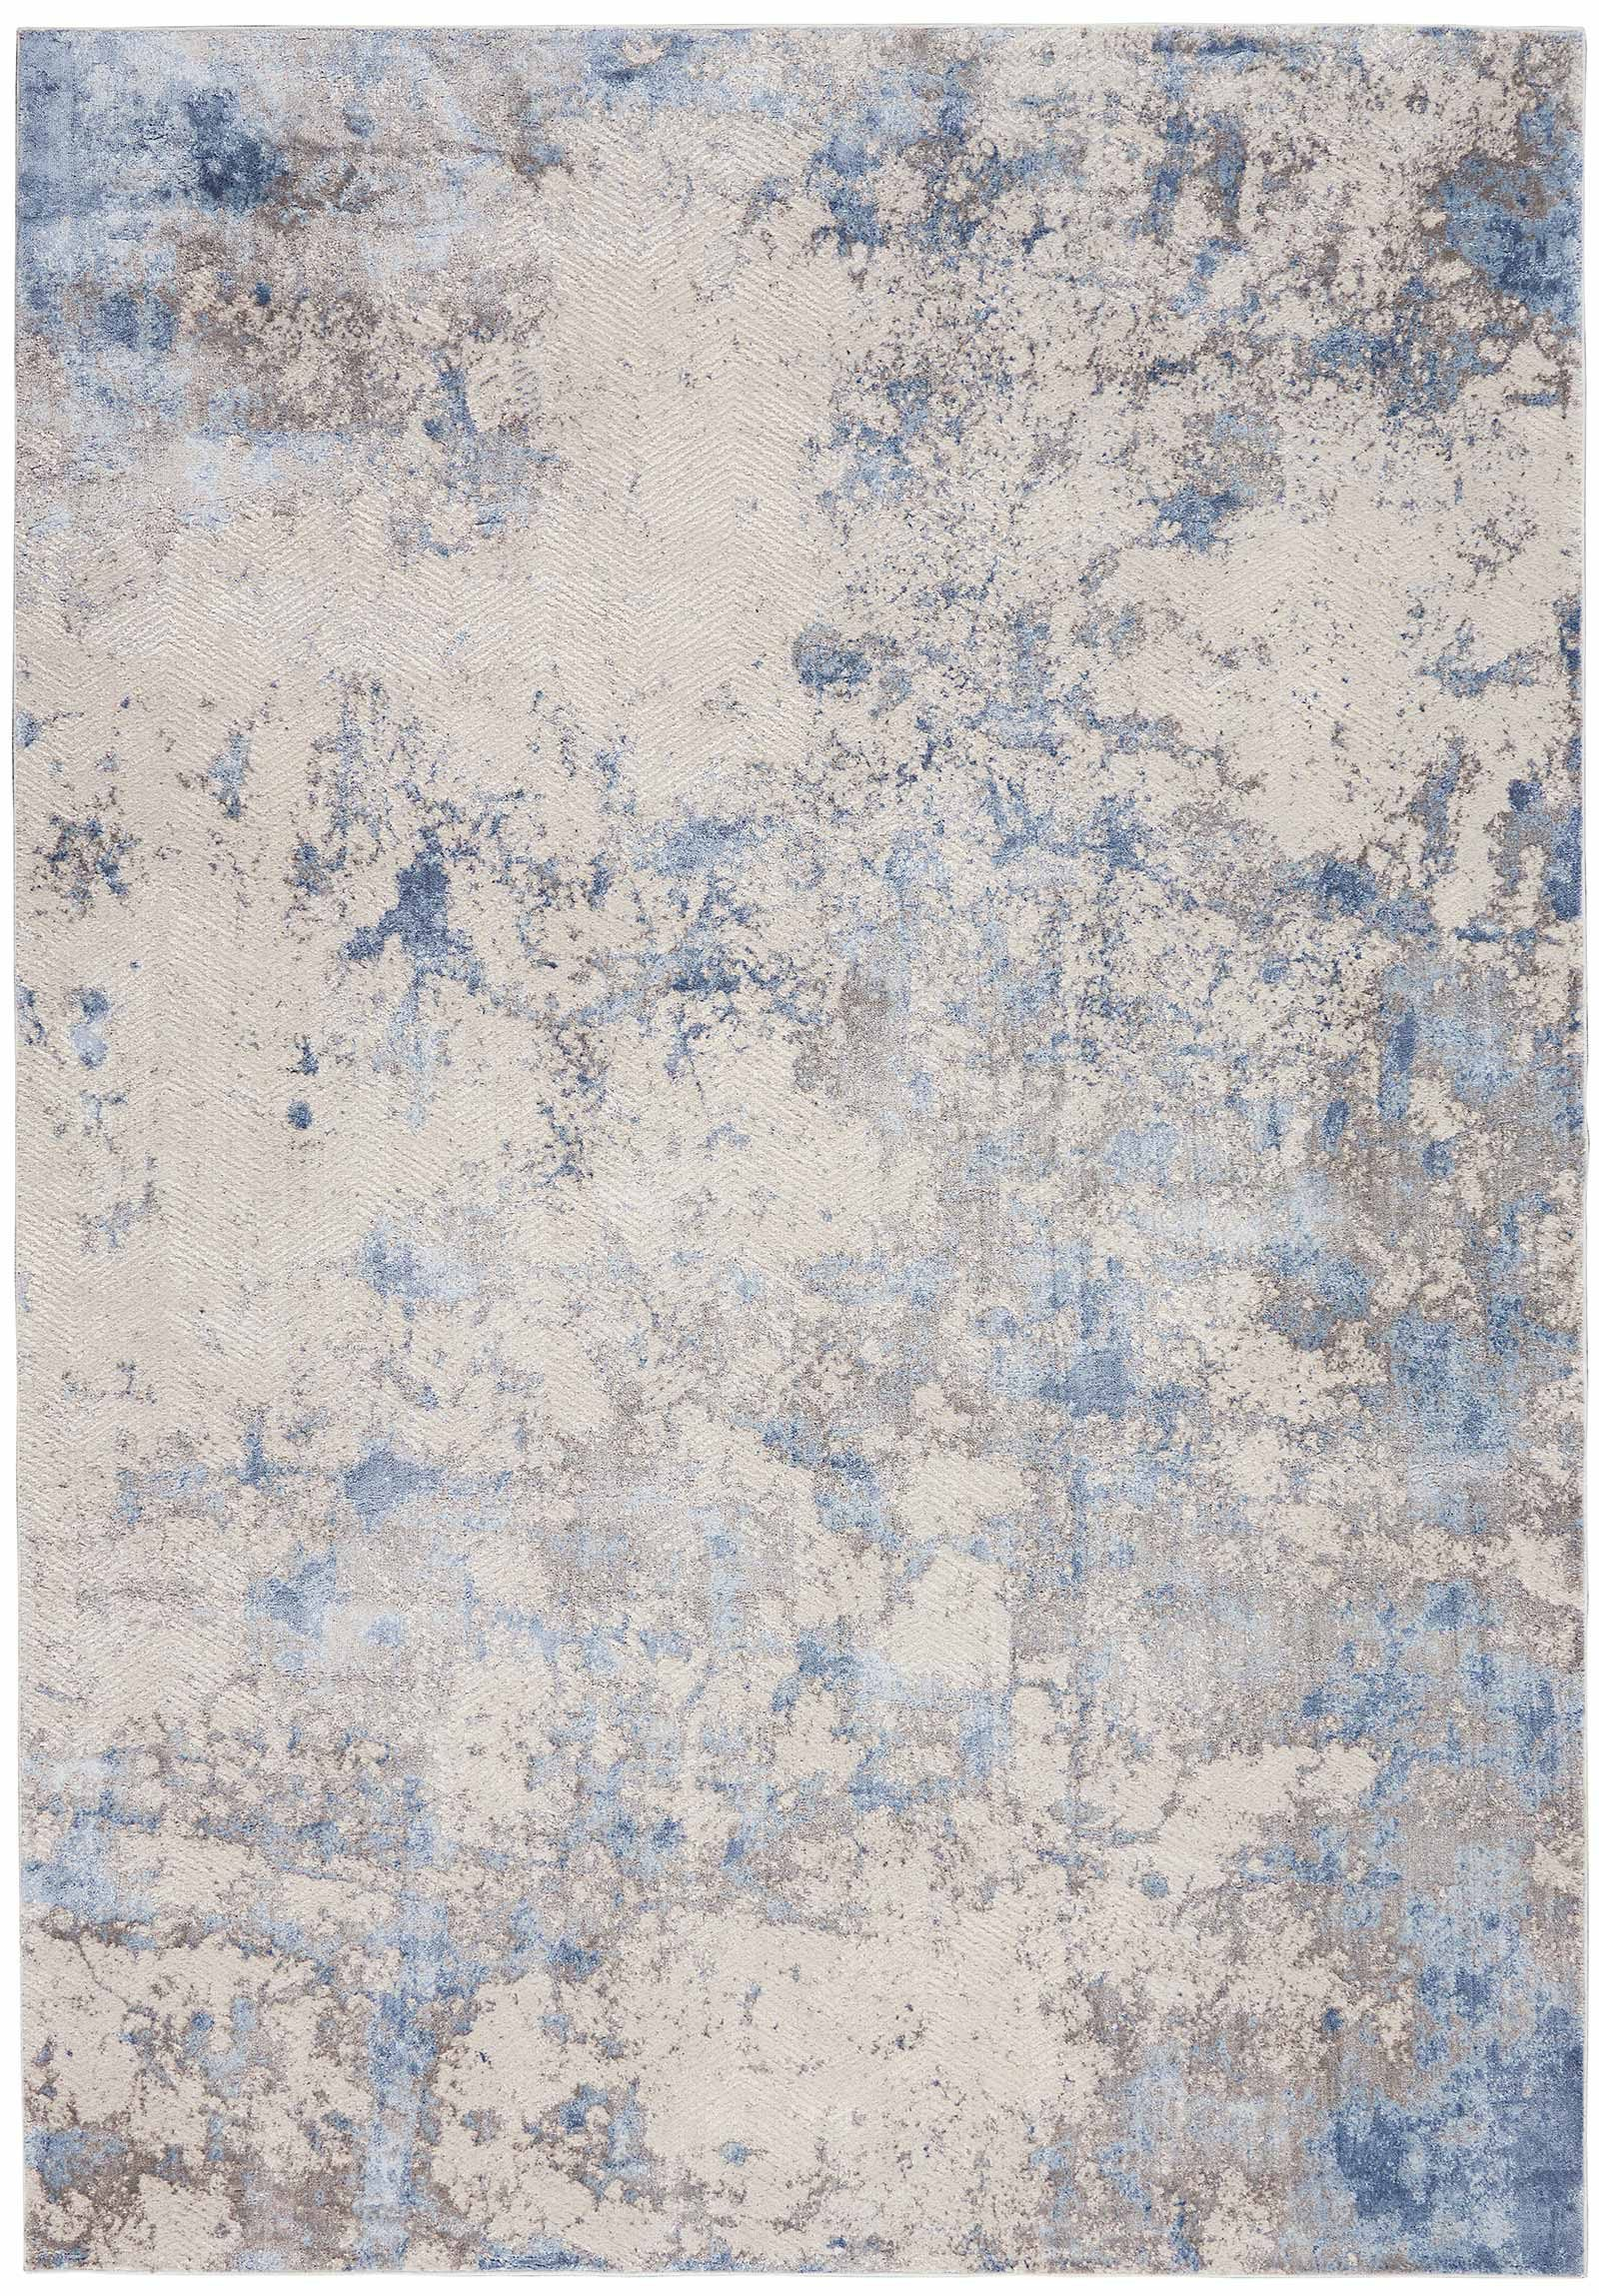 Andessi tapijt Silky Textures SLY04 BLUE IVORY GREY 5x7 099446710178 flat C